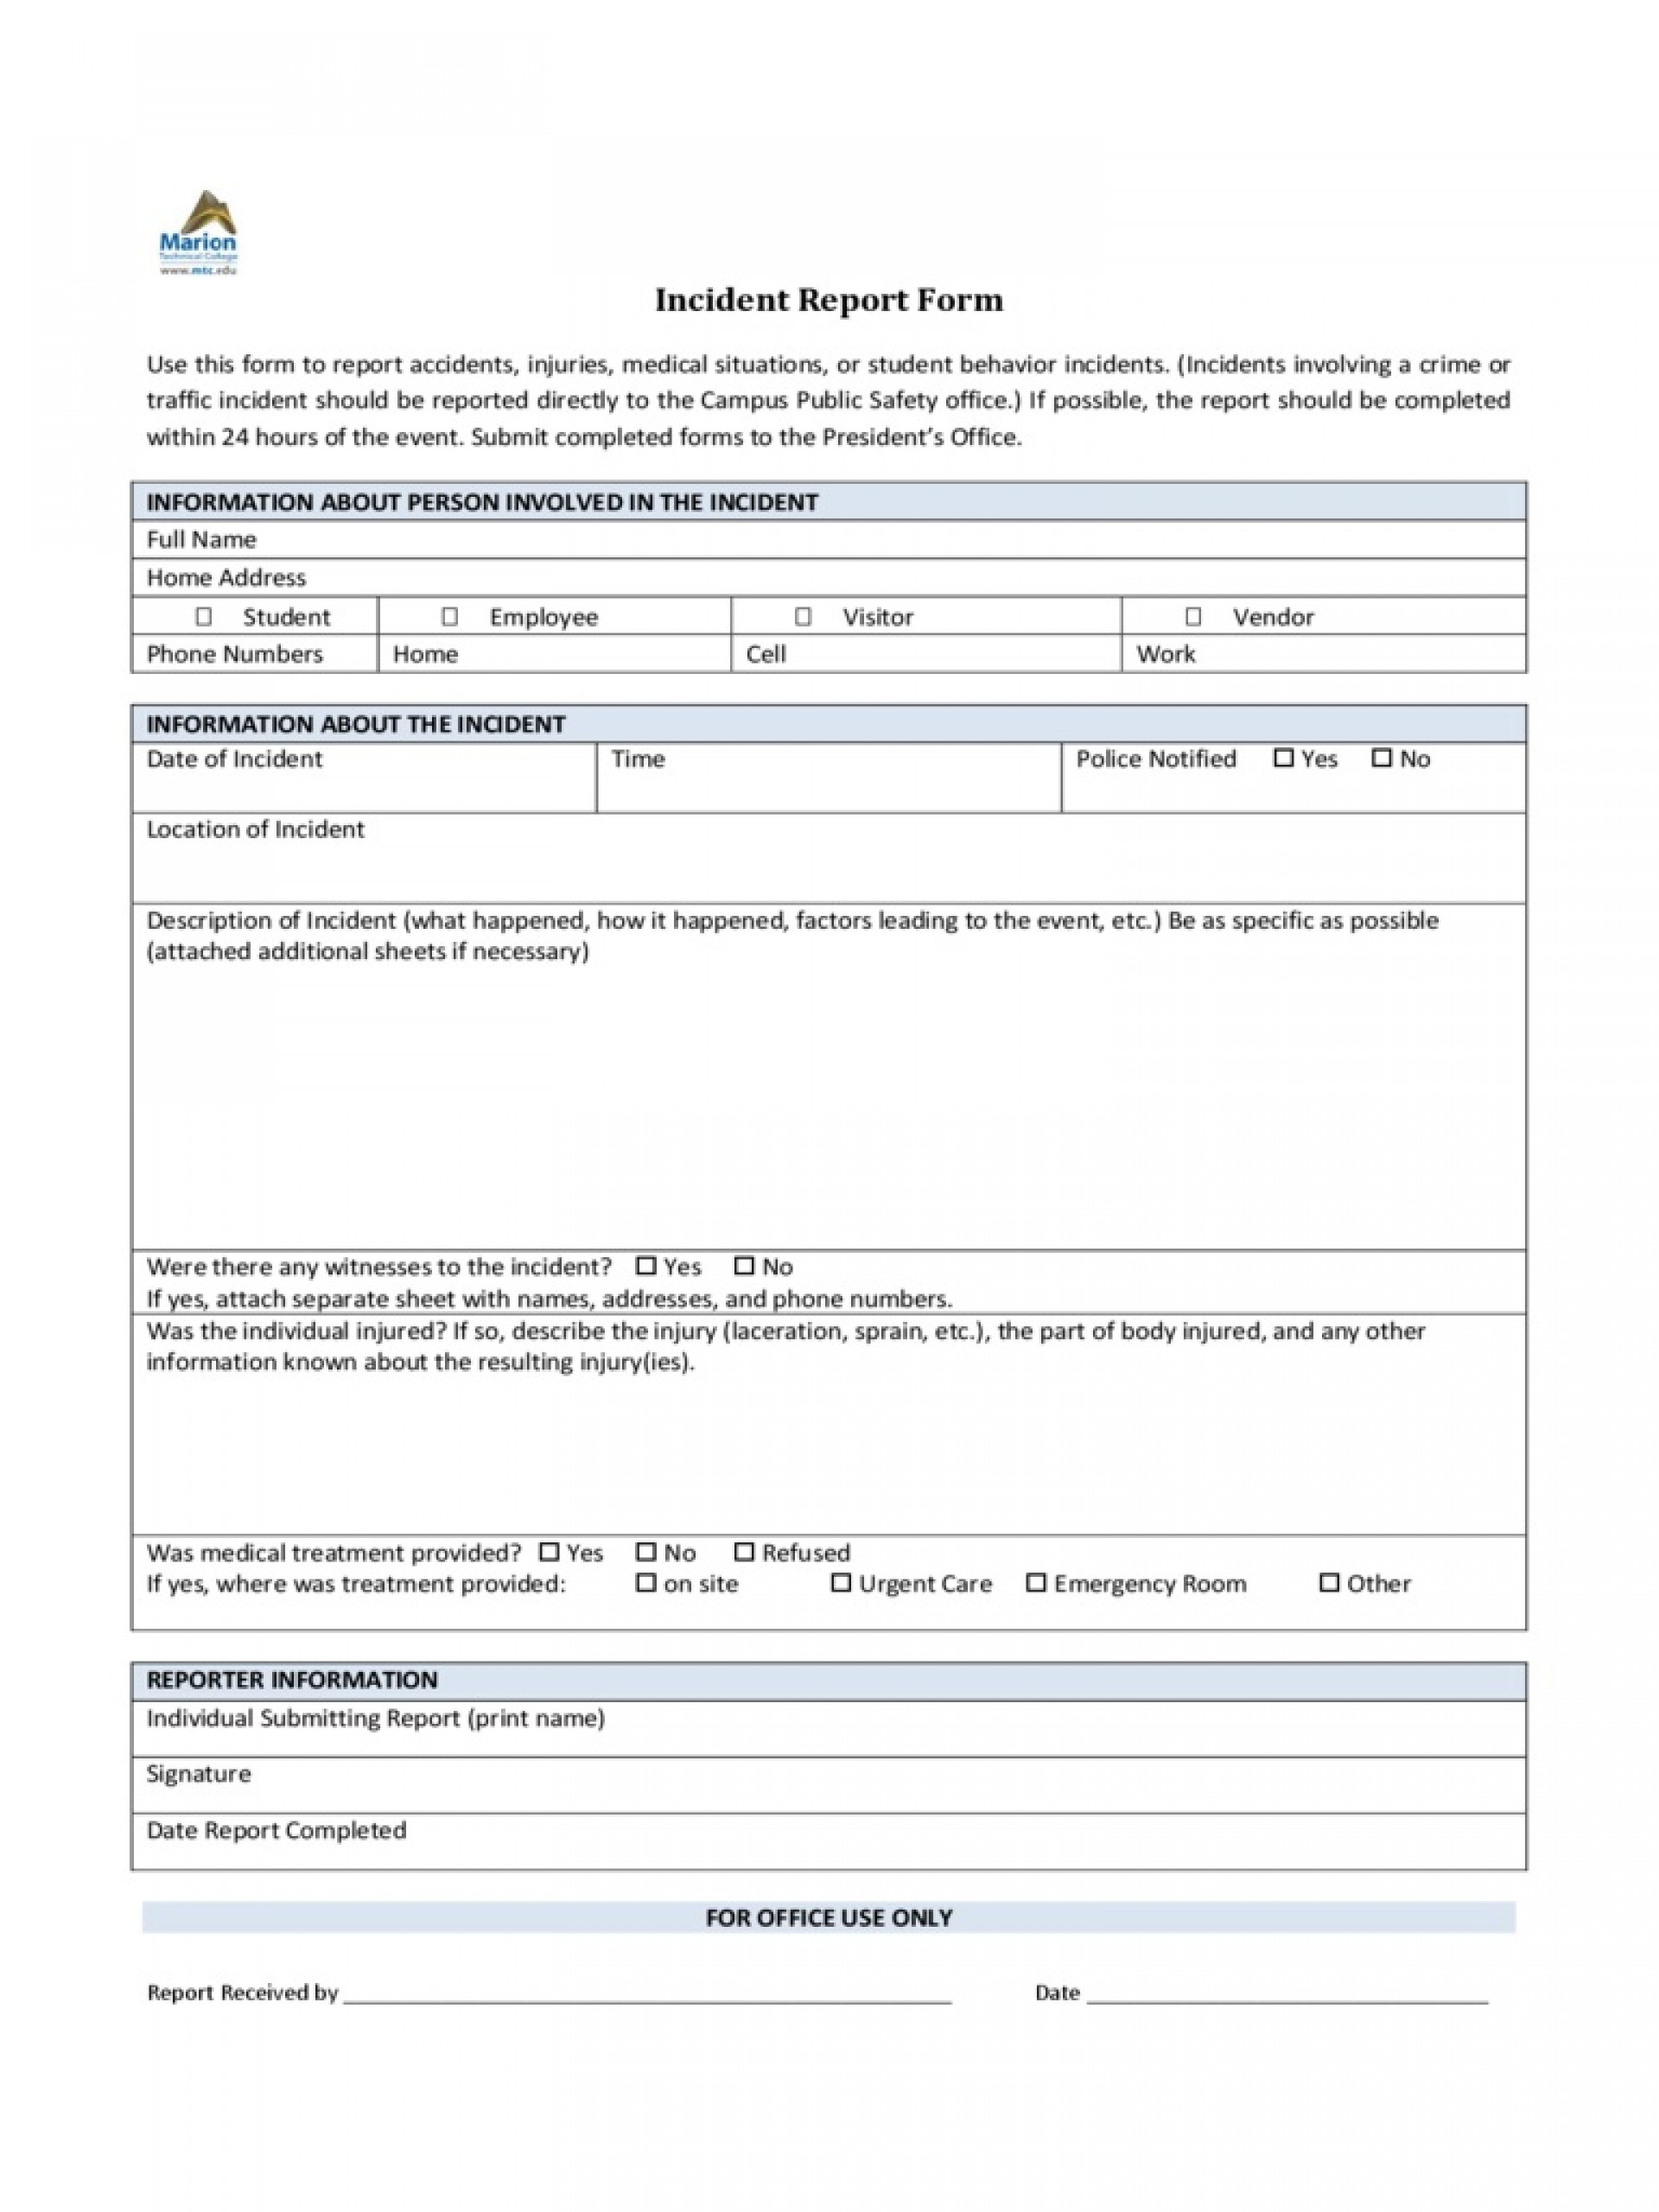 Incident Report Form Template Word Policeincident Marion Technical College  Downloadable Free1920